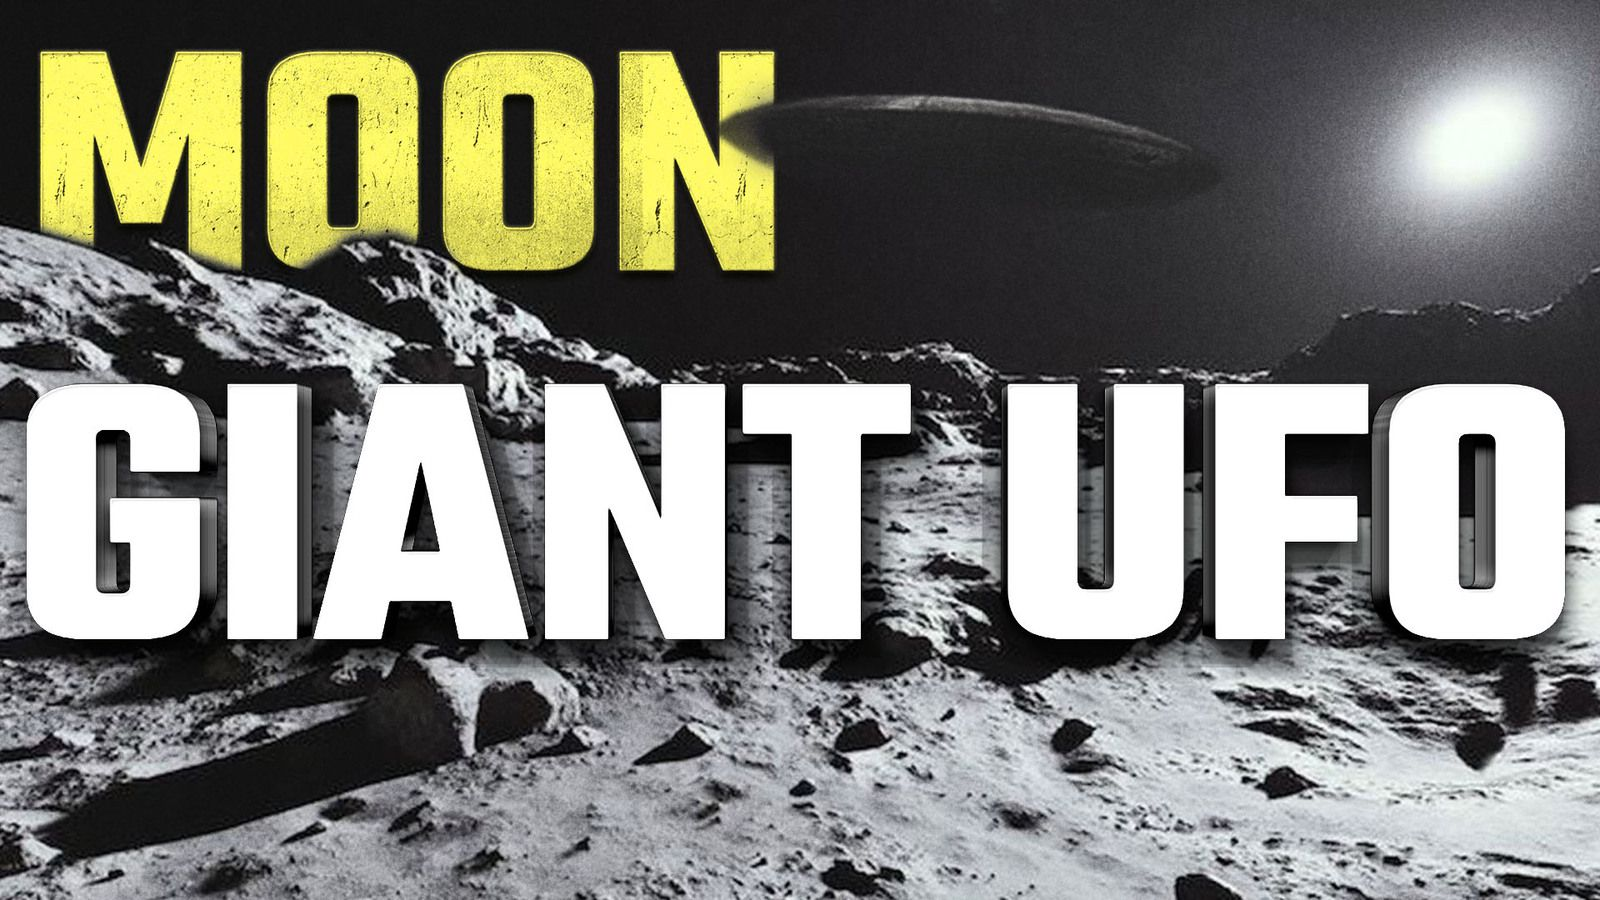 UFO Sighting News : Giant UFO Over Moon spotted by Astronomer in 2007 👽